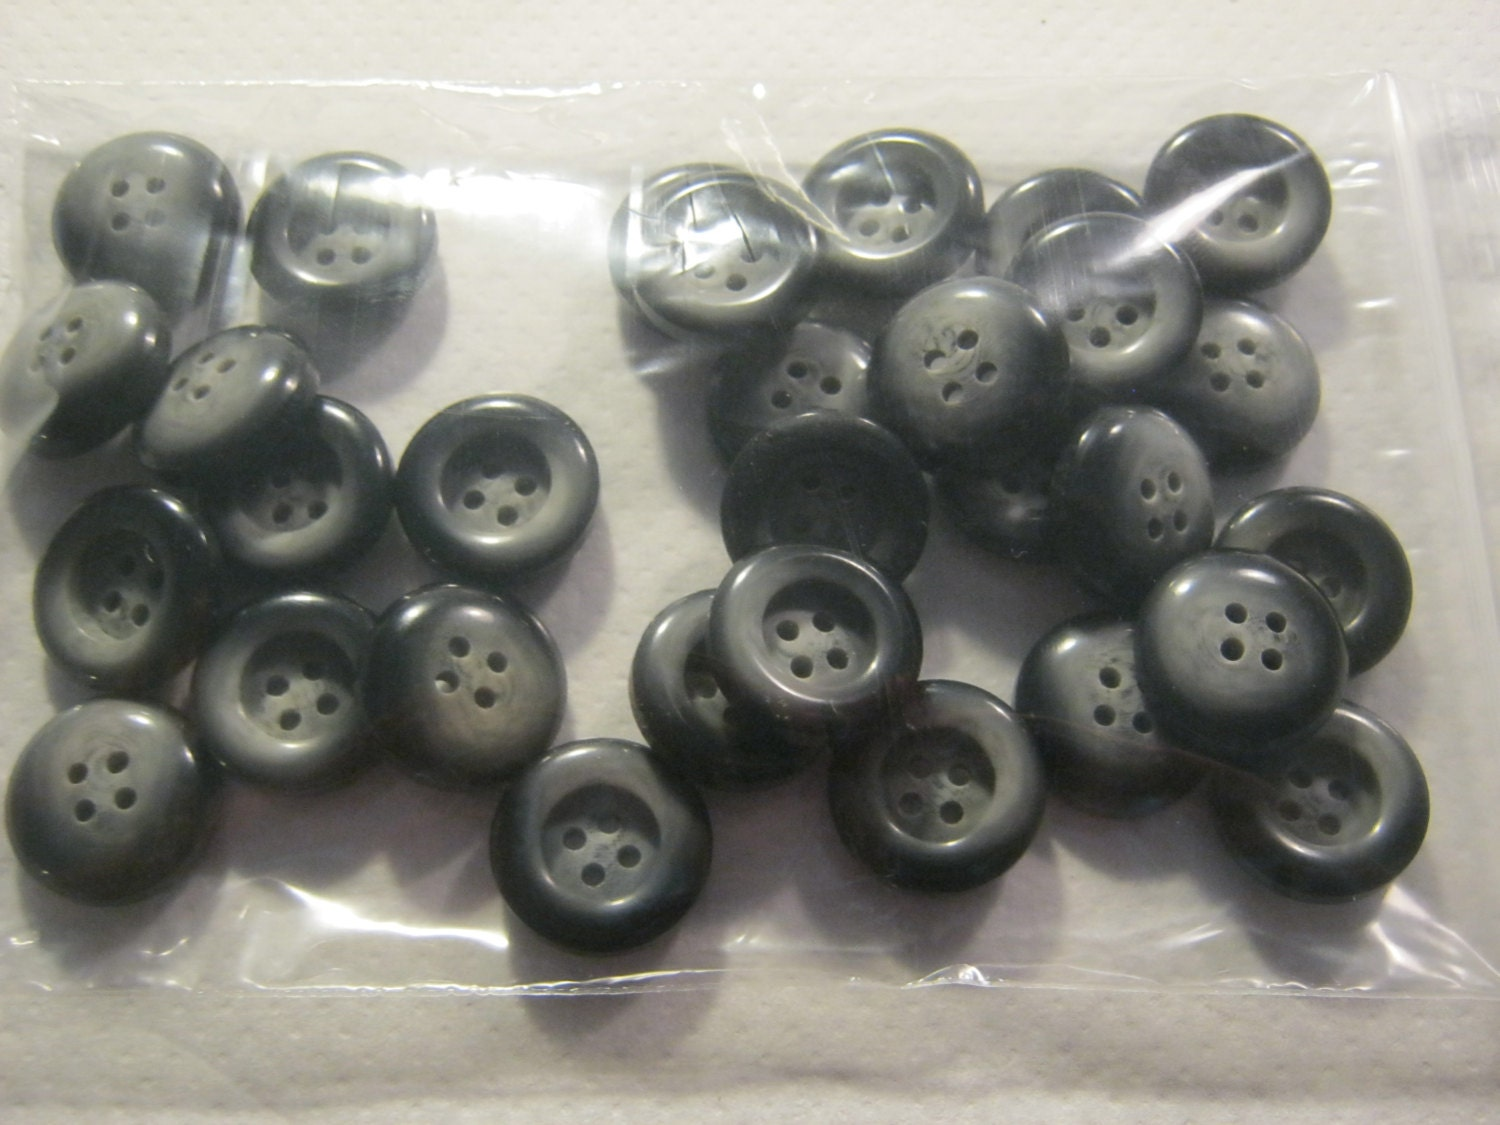 30 piece trouser buttons 4 hole 2 colours black gray diameter ca 20 mm new l beck button. Black Bedroom Furniture Sets. Home Design Ideas